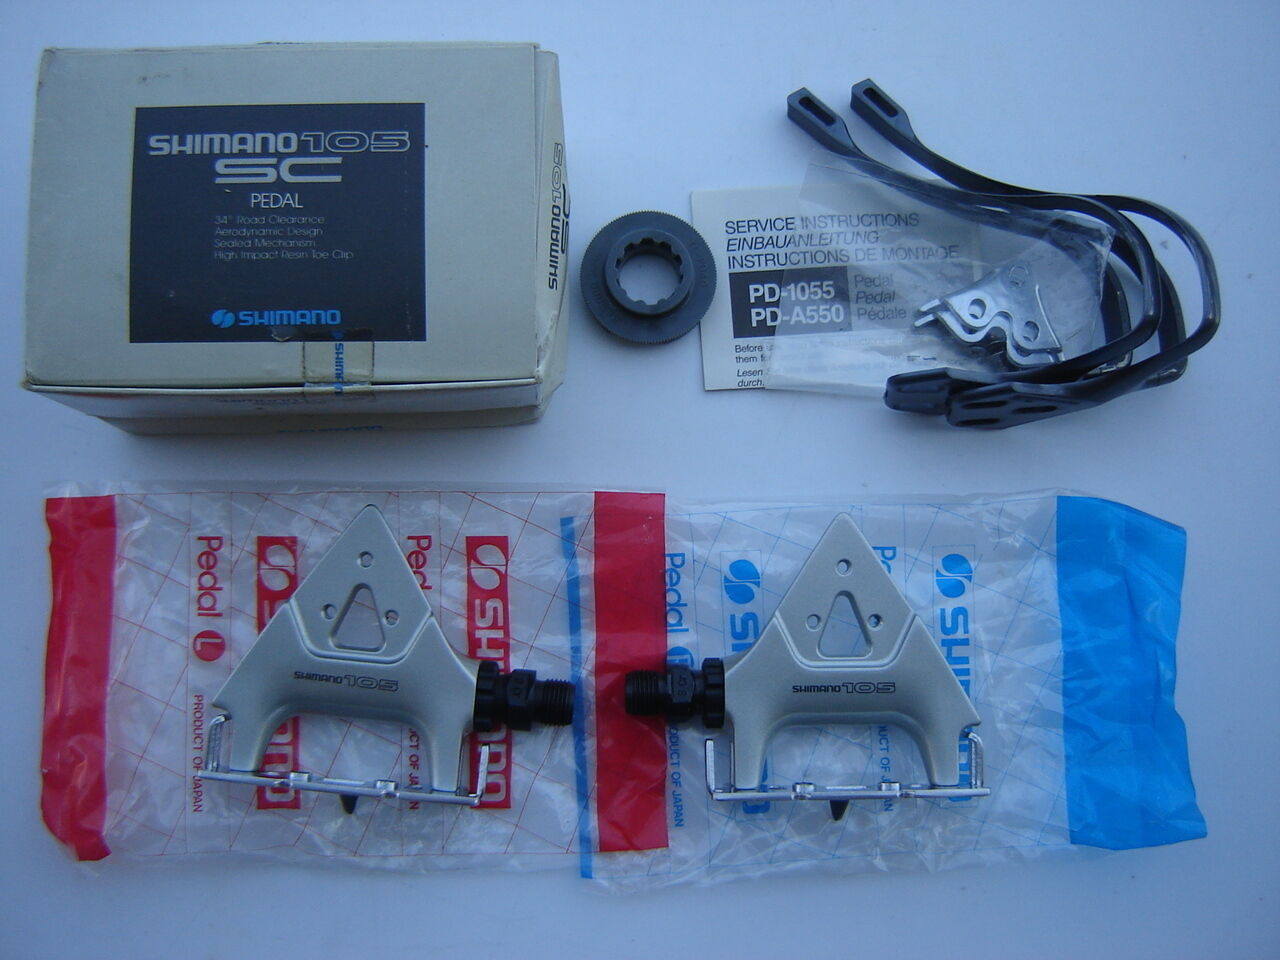 SHIMANO 105 SC PD-1055  PEDALS + TOE CLIPS + TOOL - NOS - NIB  quality first consumers first